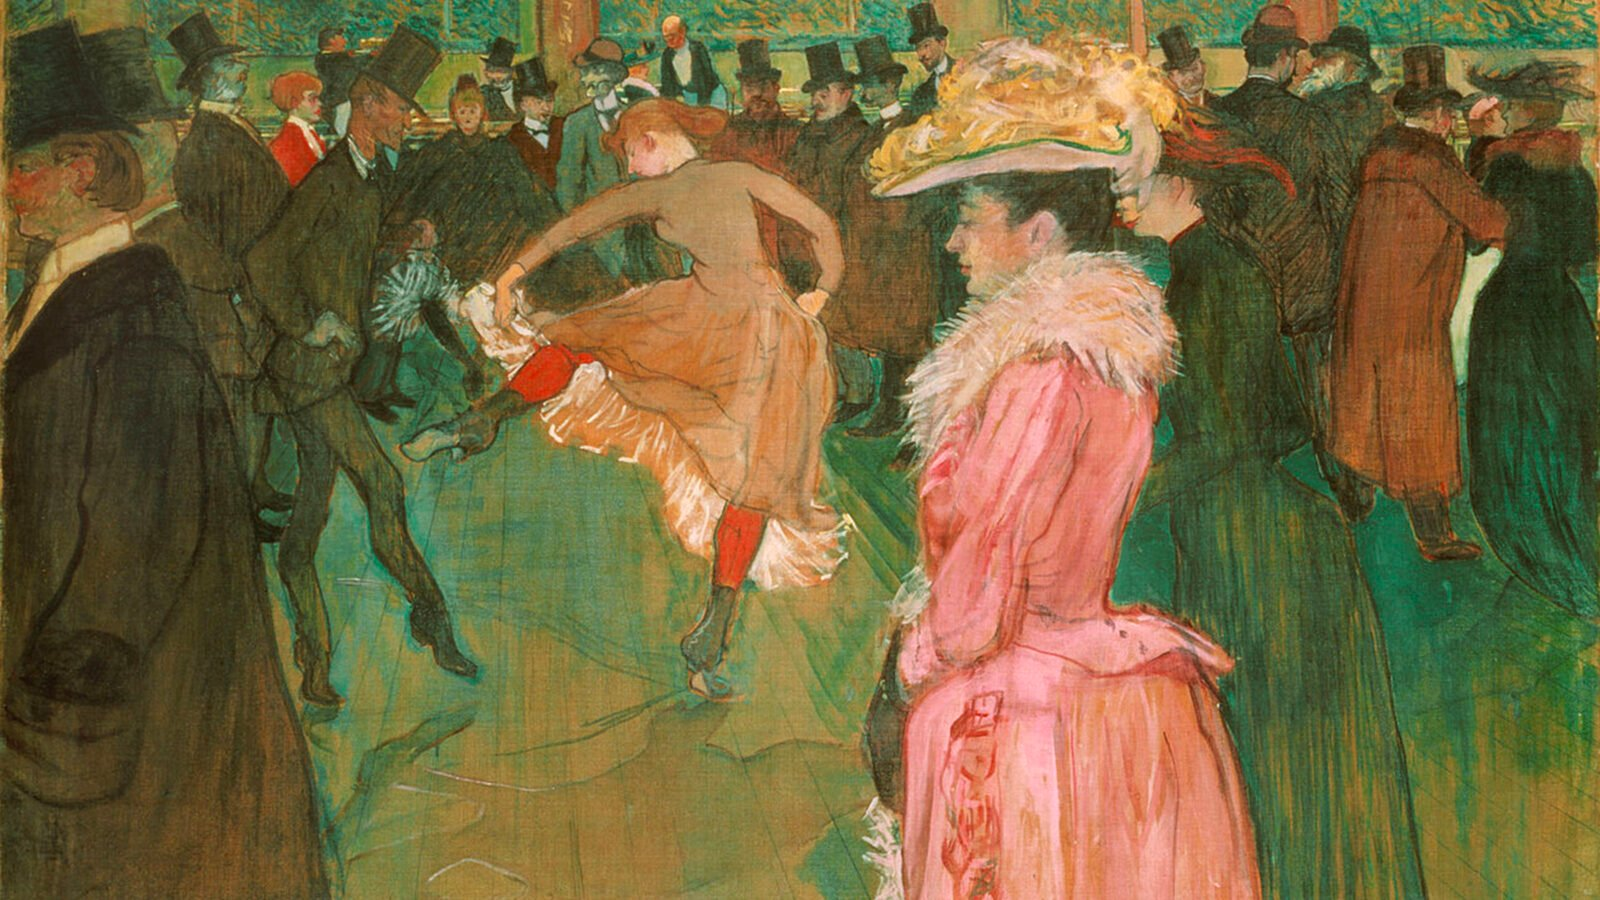 this is a painting from Toulouse Lautrec, it shows a woman dressed in pink and another one dancing